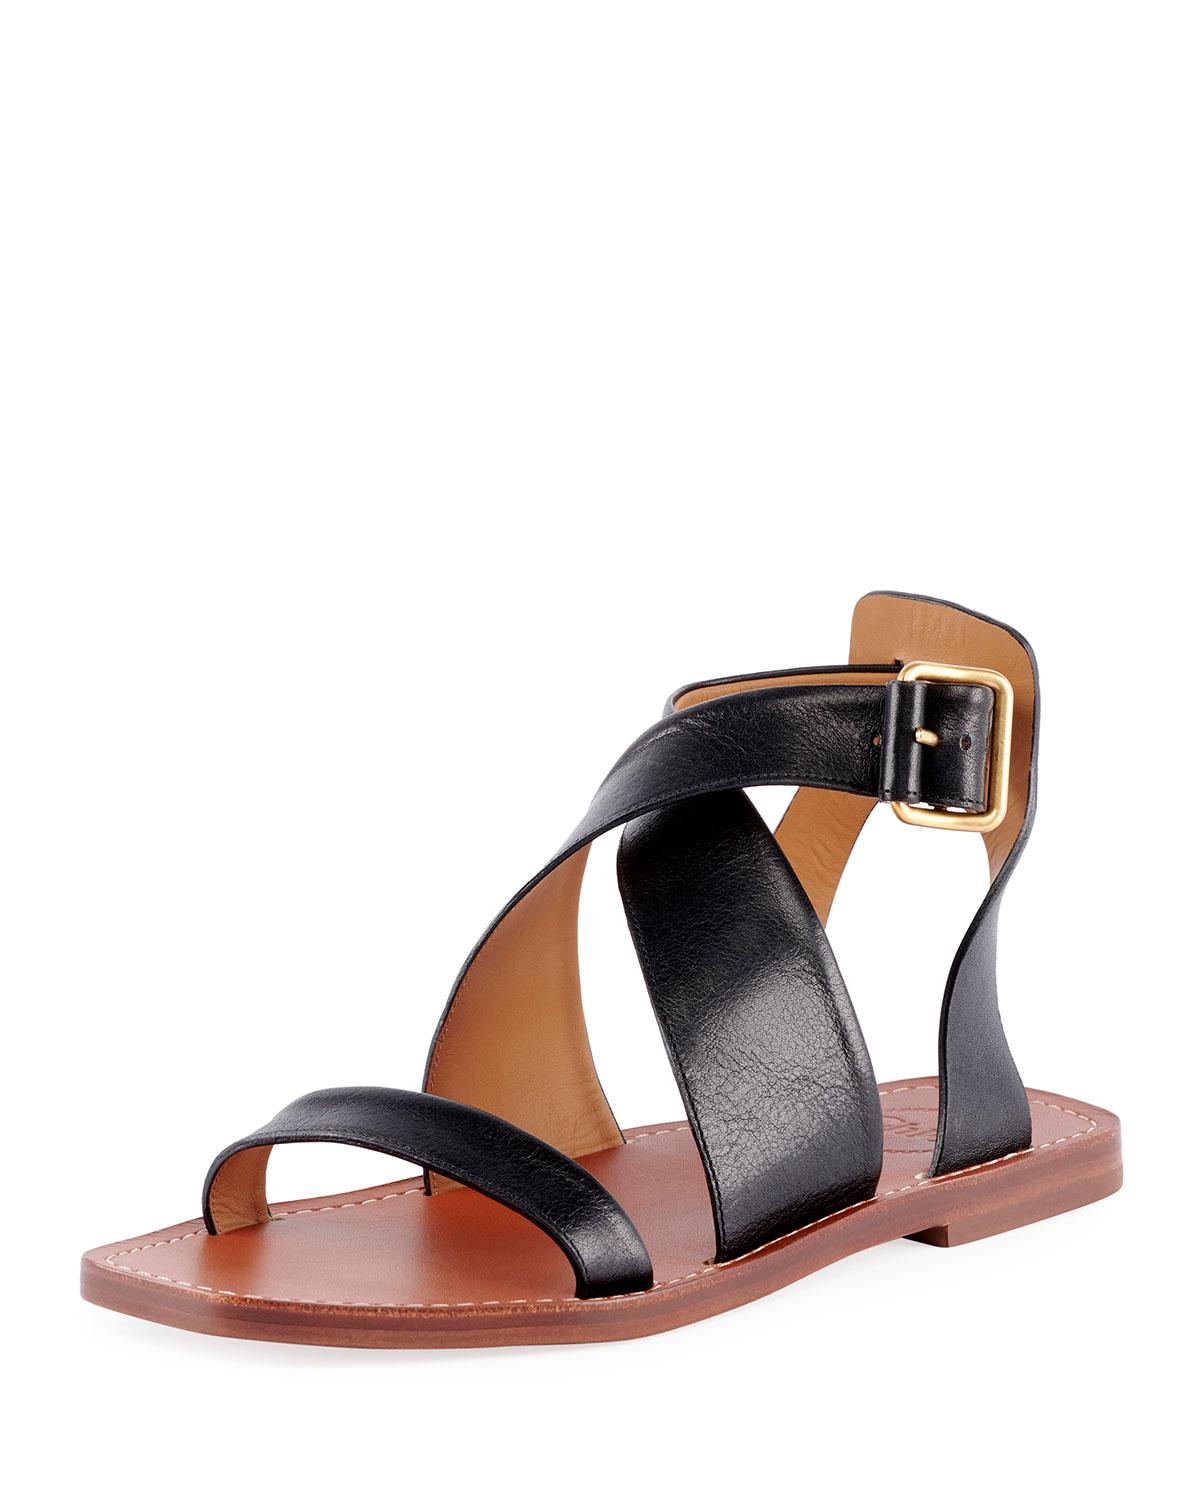 Virginia Leather Ankle Strap Sandals